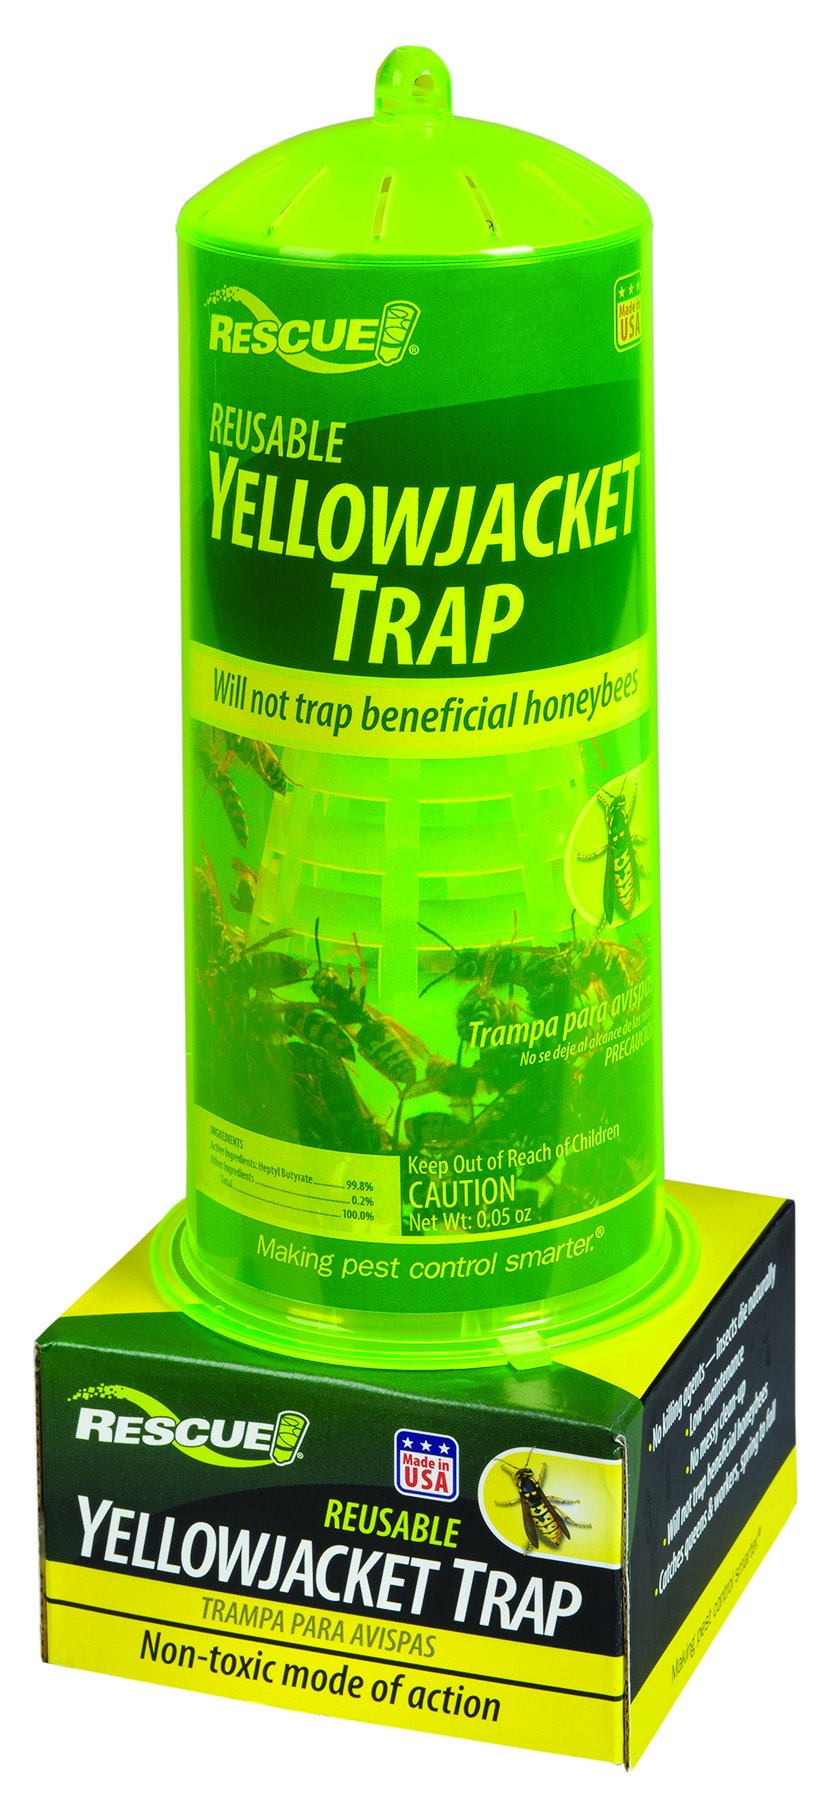 RESCUE! Non-Toxic Reusable Trap Yellowjackets